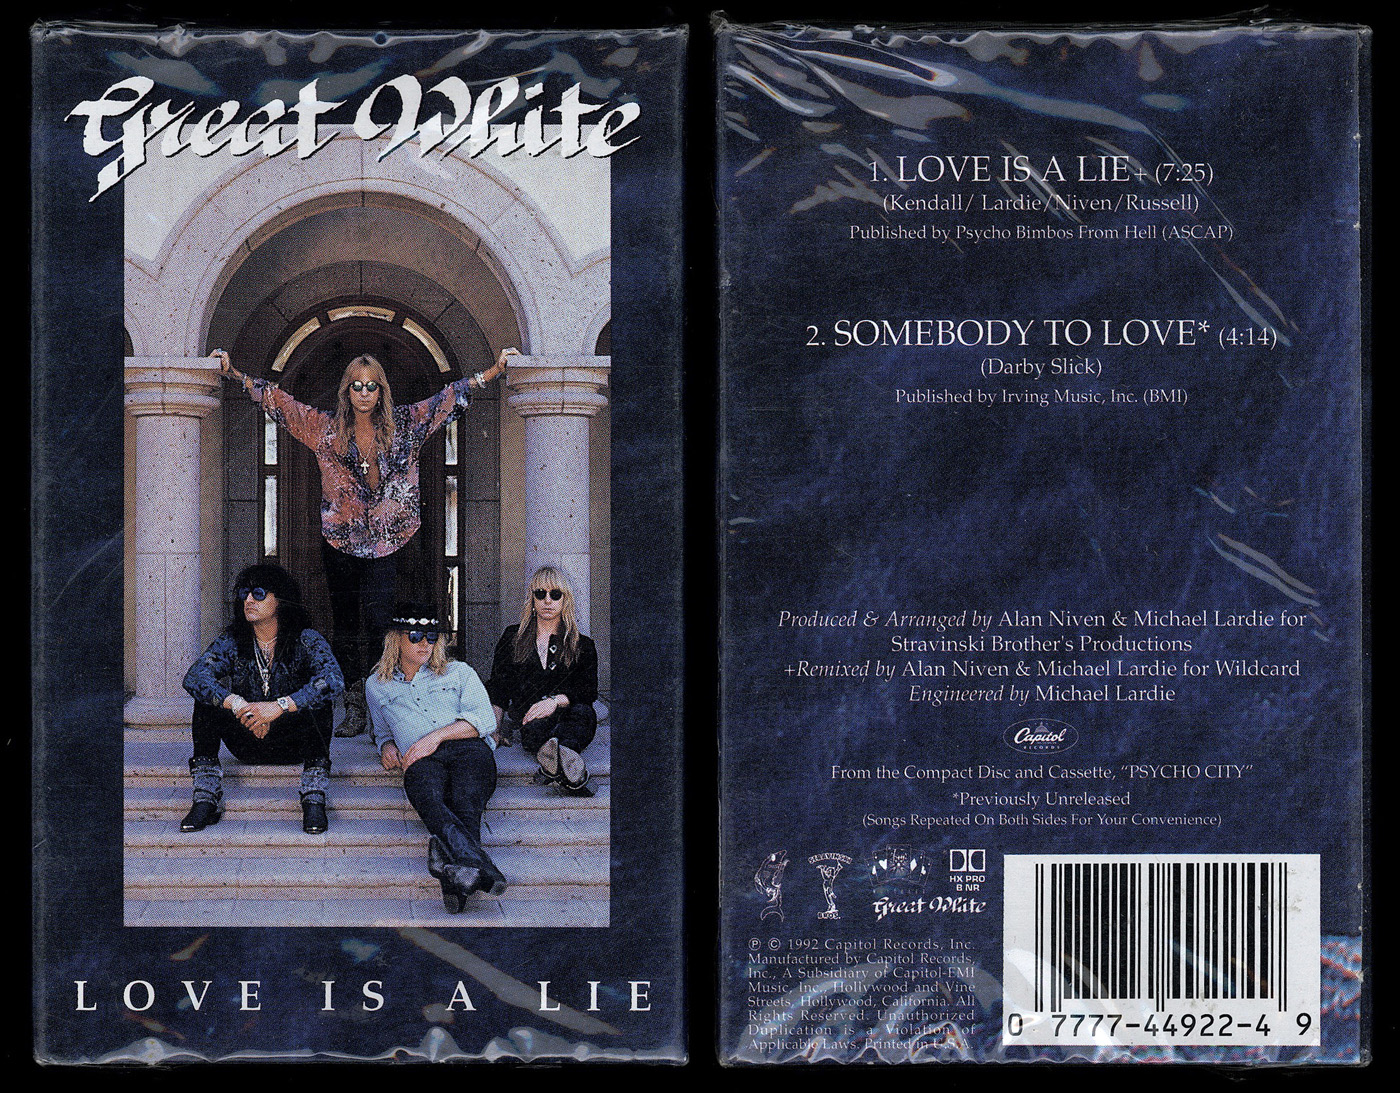 Great White cassingle front and back